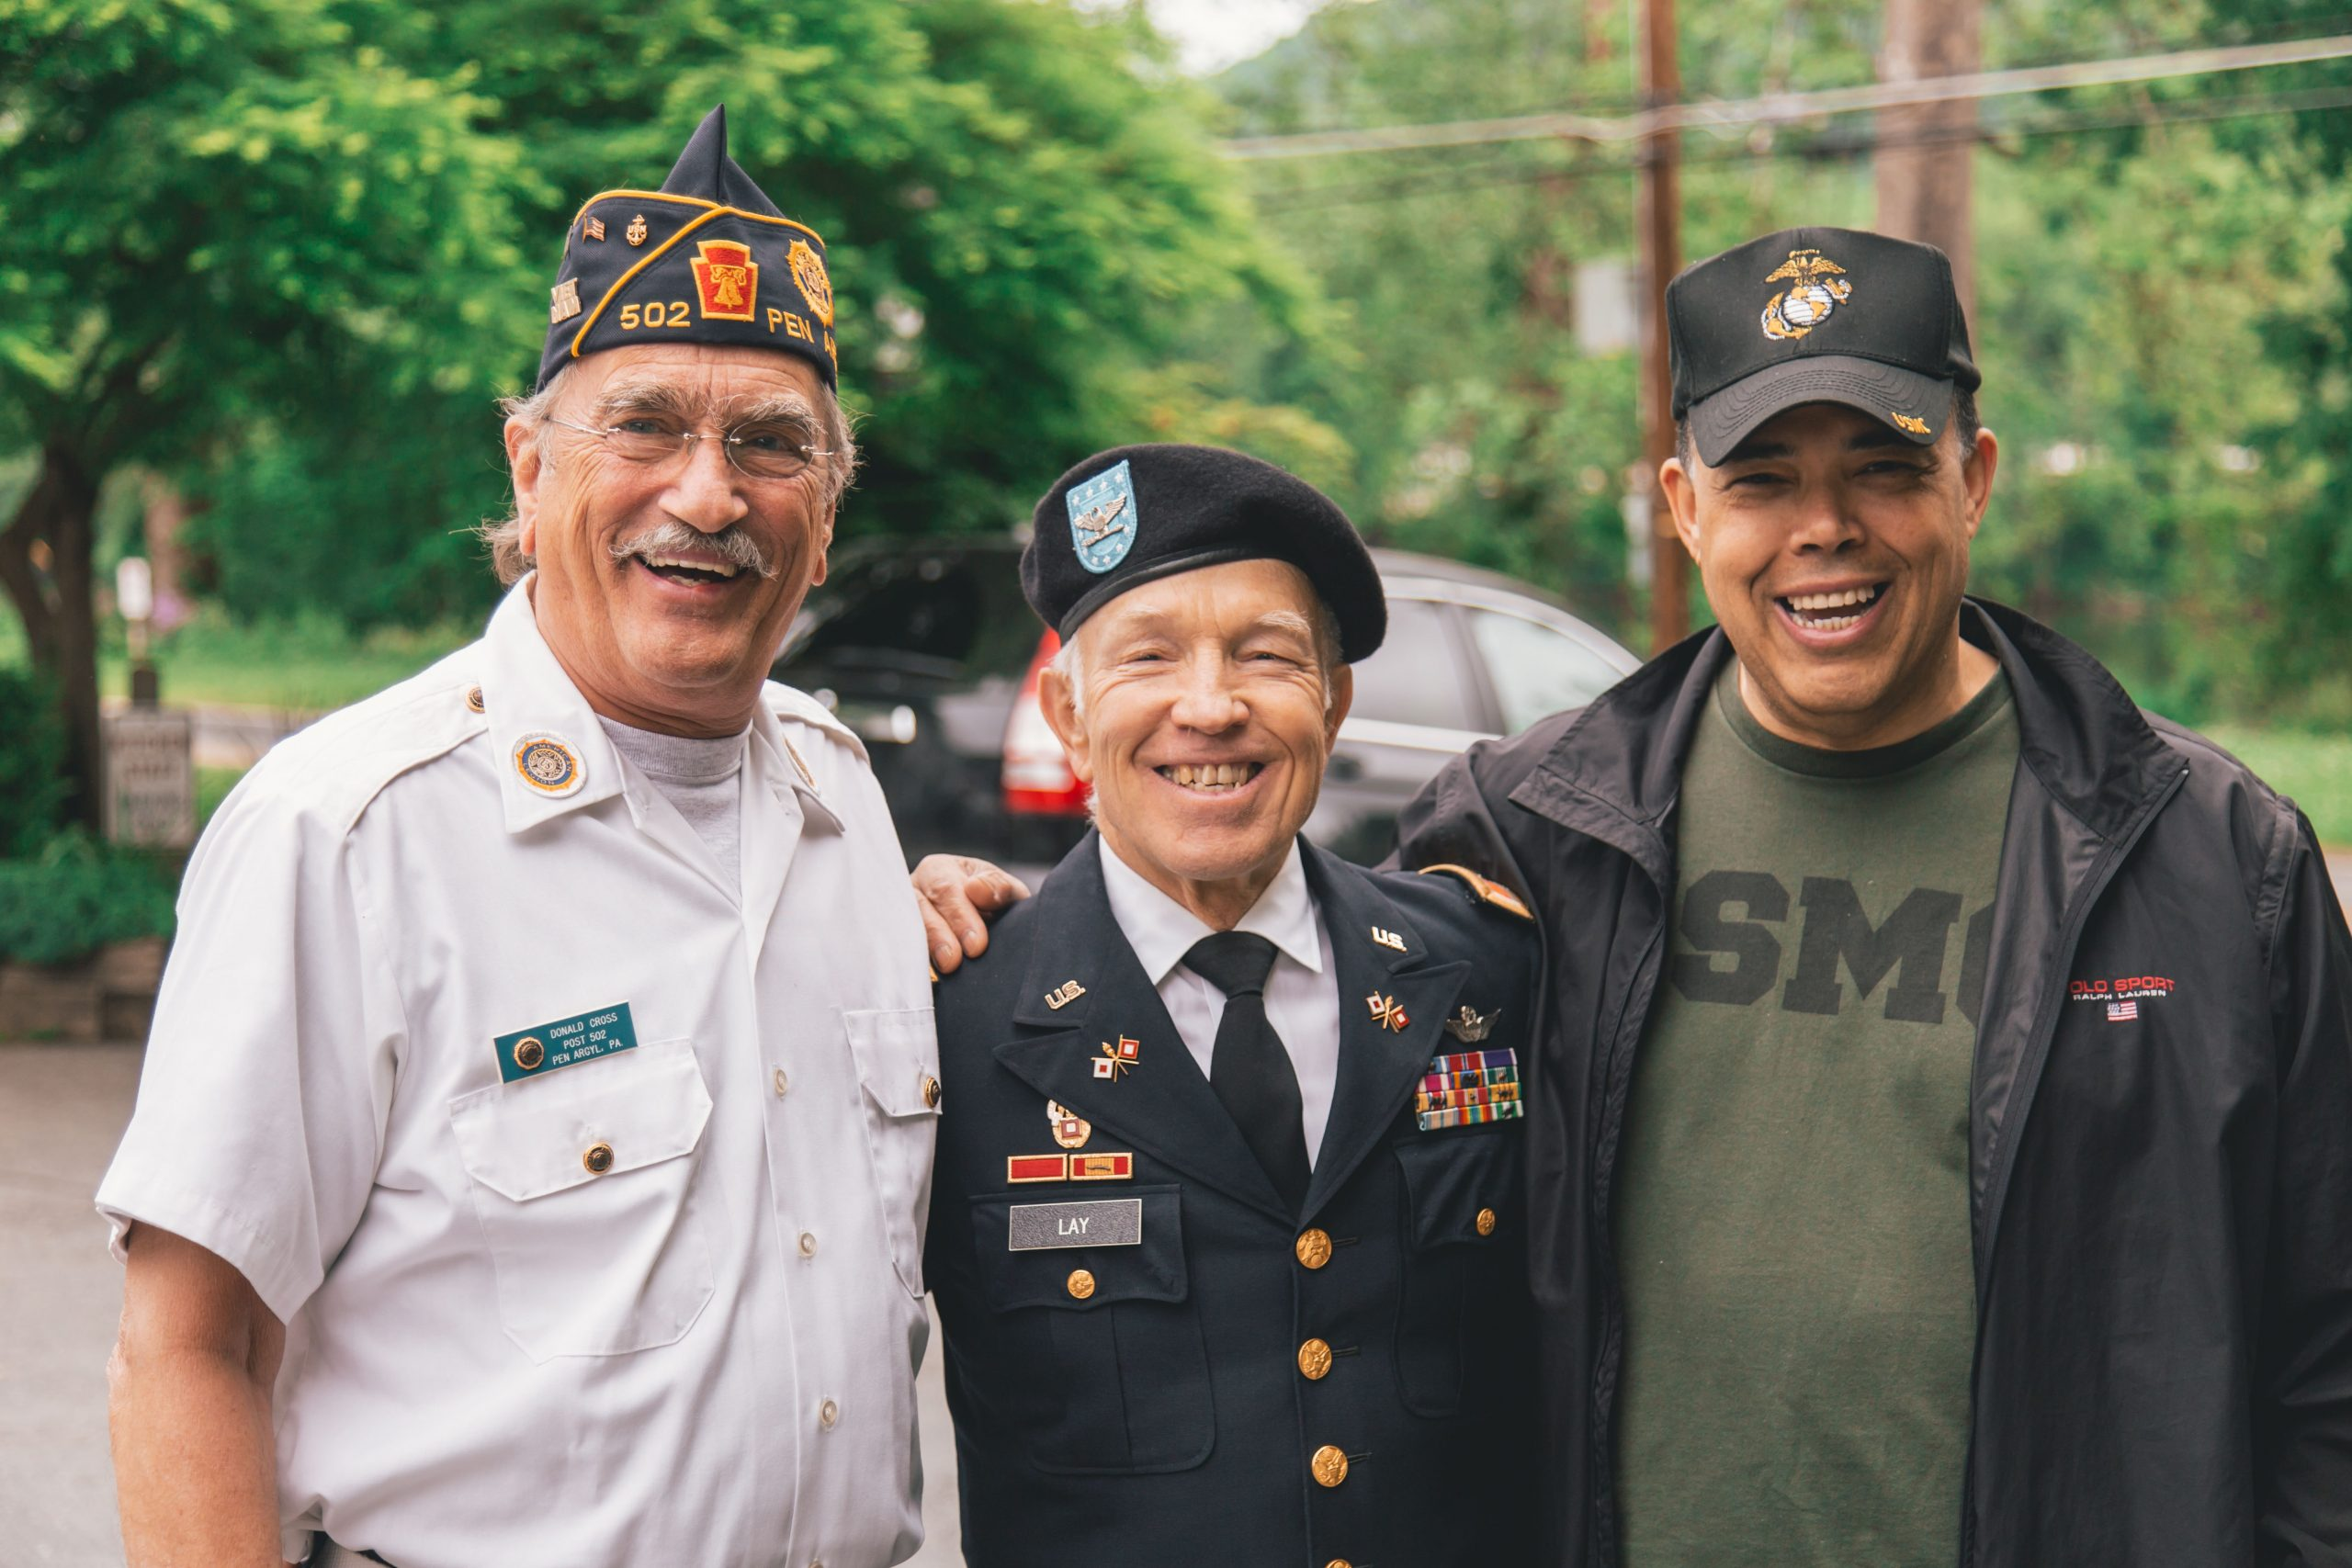 Veterans' Benefits- New Illnesses Added To Veterans' Benefits For The First Time In Years